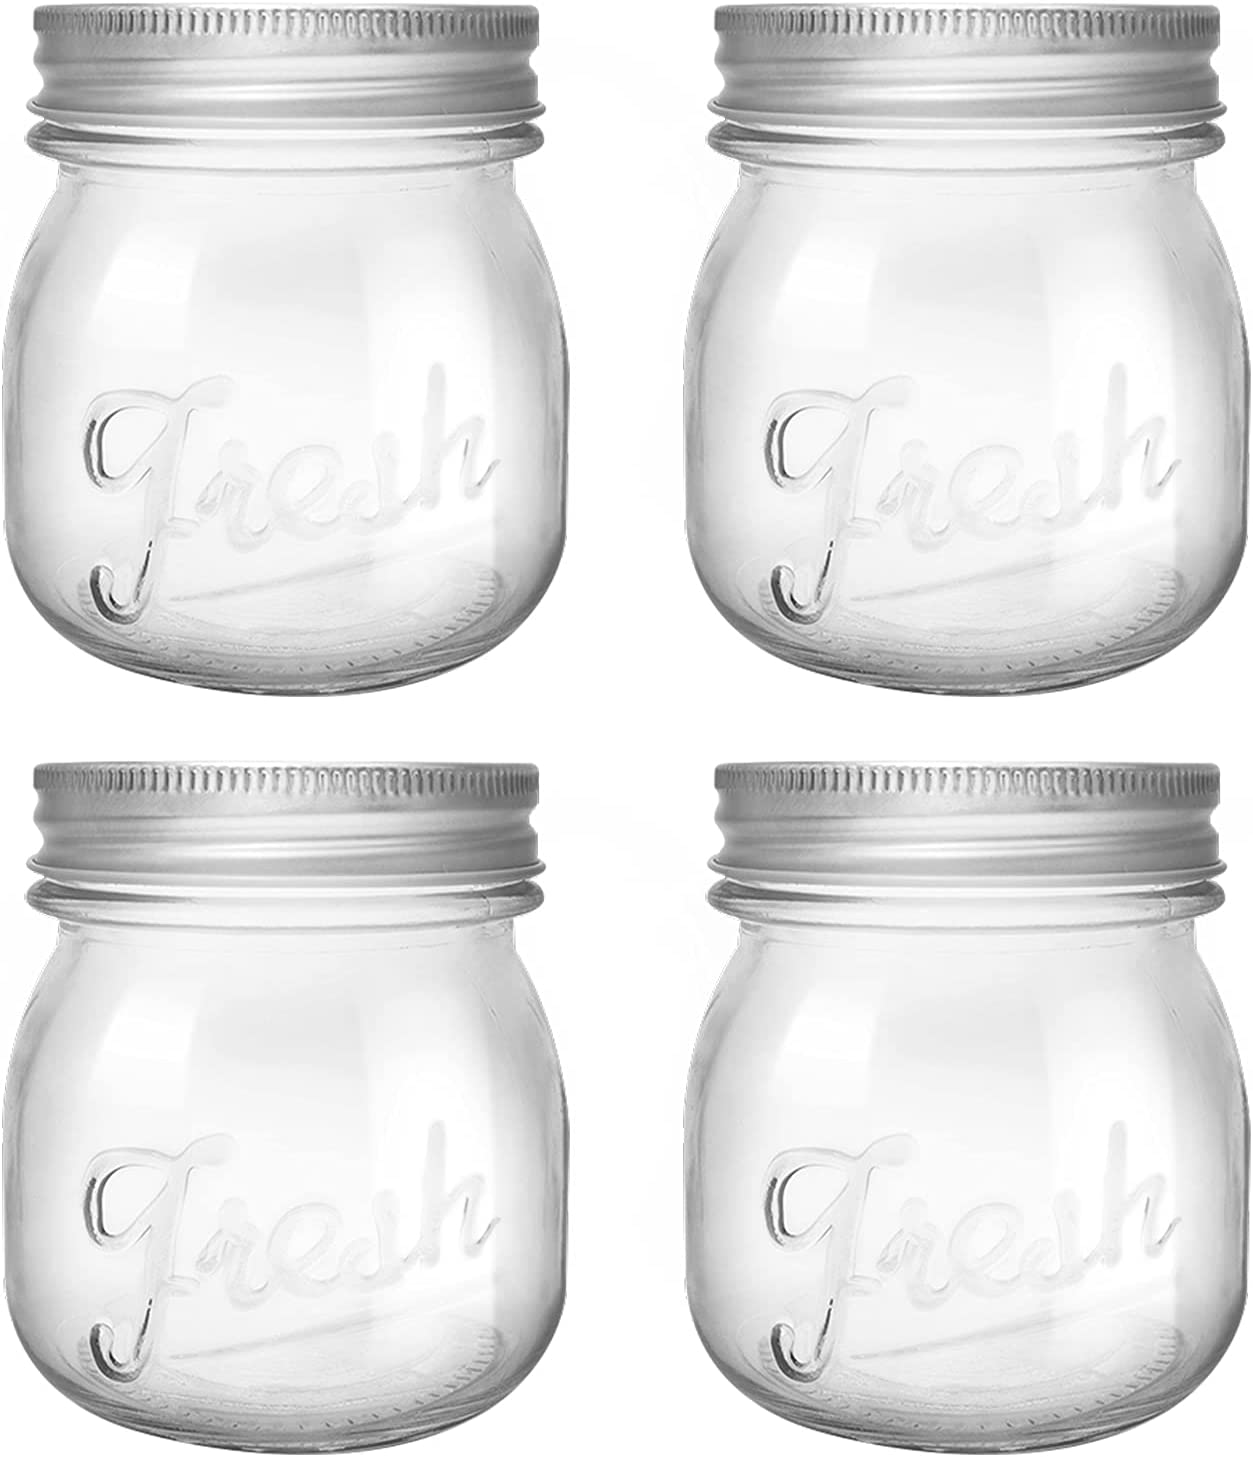 YNB.BEAUSEL Glass Mason Jar 8 oz Regular Mouth Canning Jars 4 Pack with Silver Metal Airtight Lids for Meal Prep, Pickling, Food Storage, Canning, Drinking, Overnight Oats, Jelly, Jam, Honey, Dry Food, Salads, Yogurt, Decorating